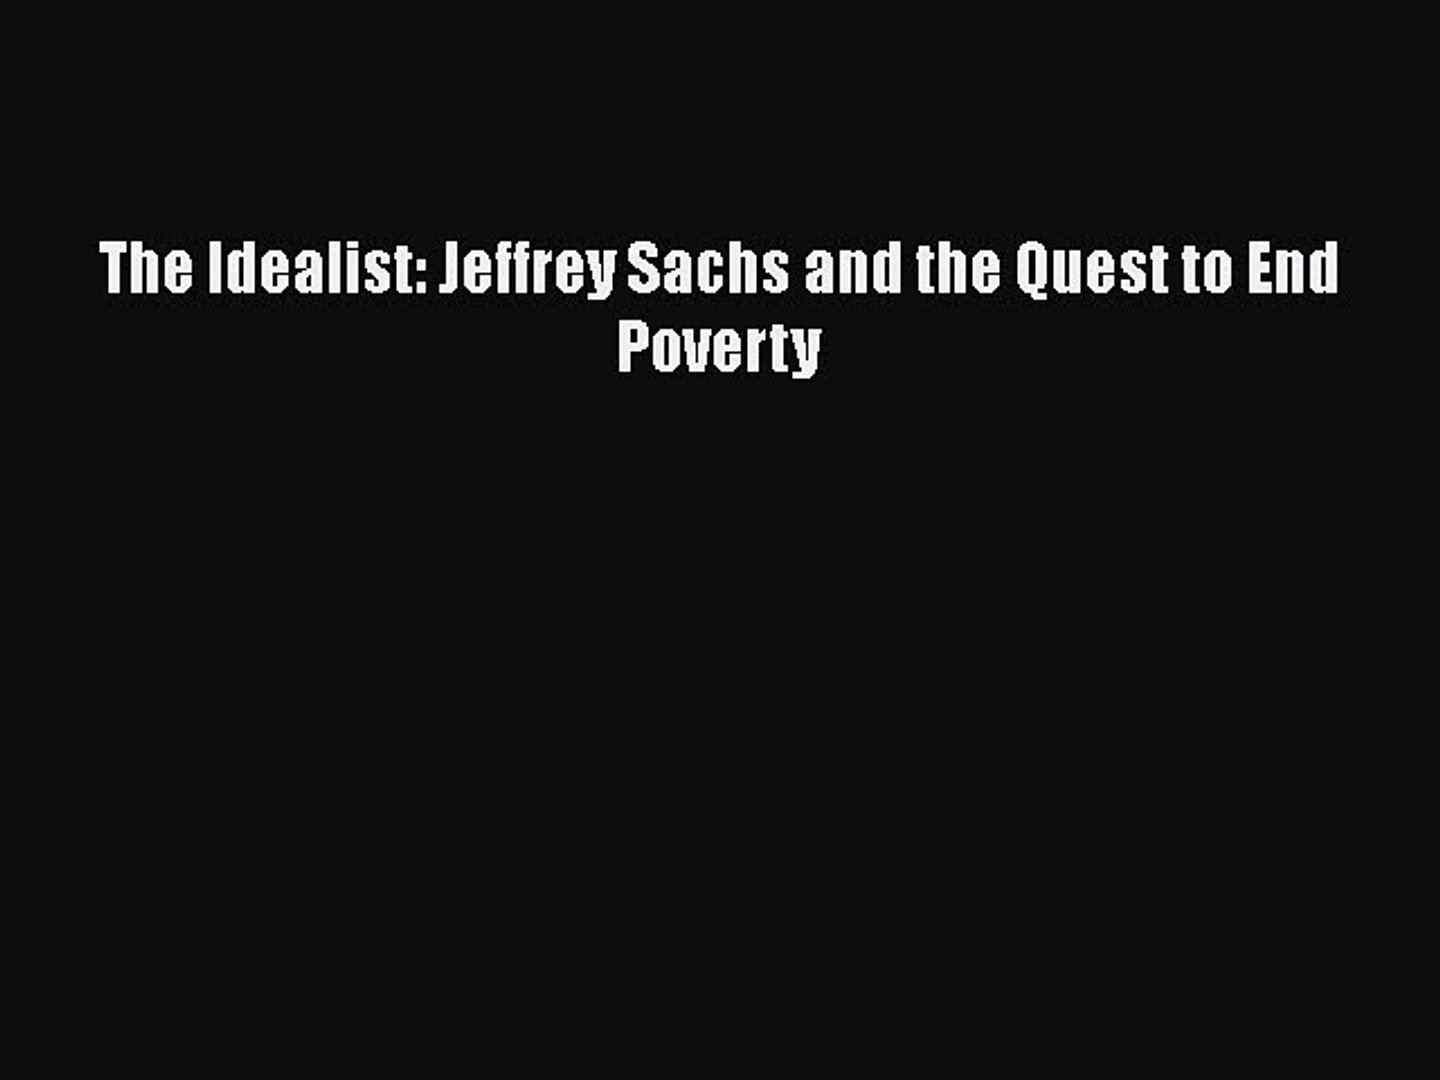 The Idealist Jeffrey Sachs and the Quest to End Poverty